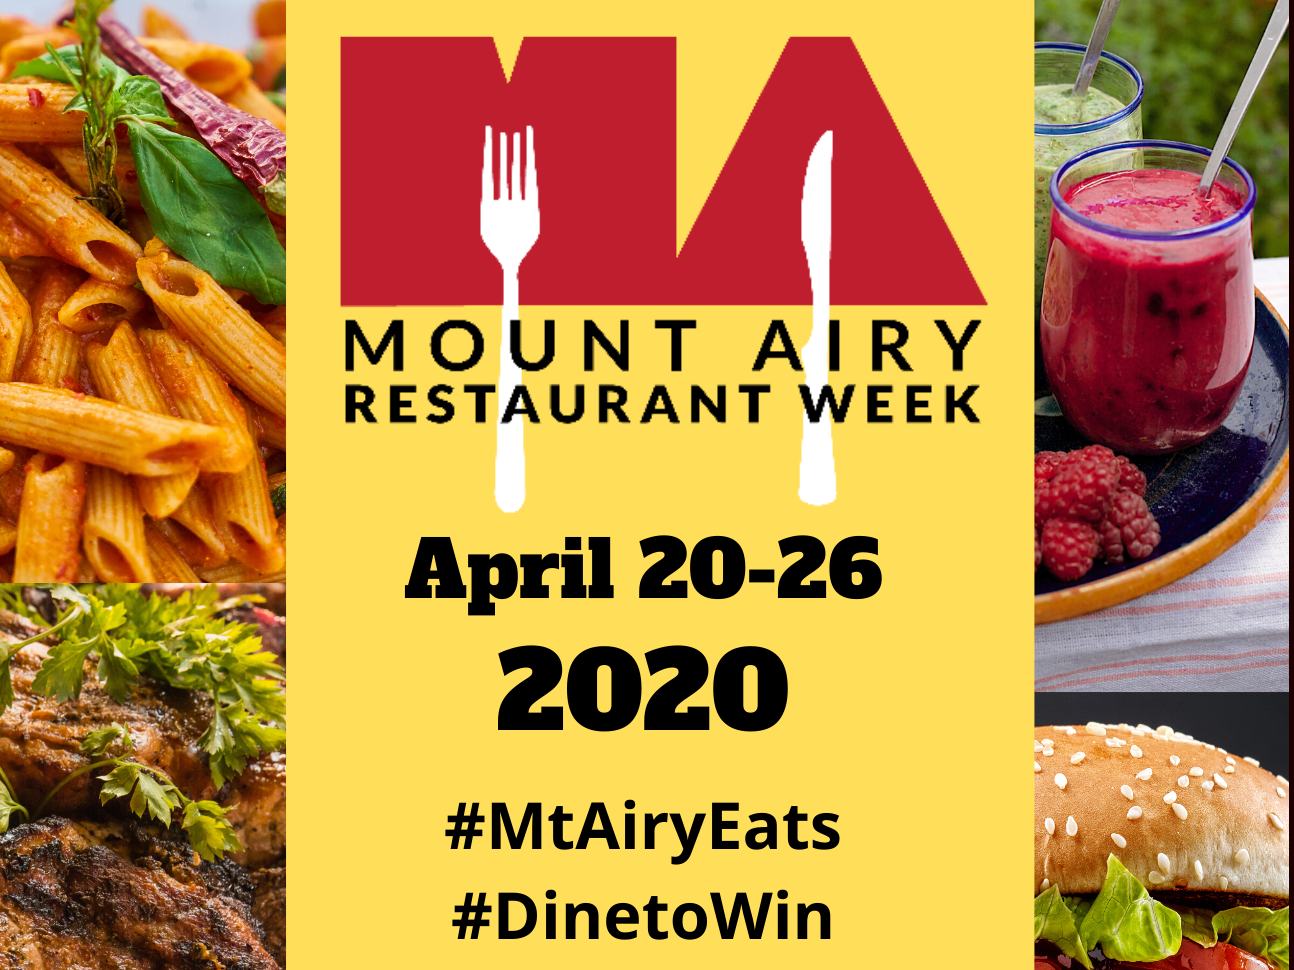 Restaurant Week 2020 - 11 x 17 new edition as image